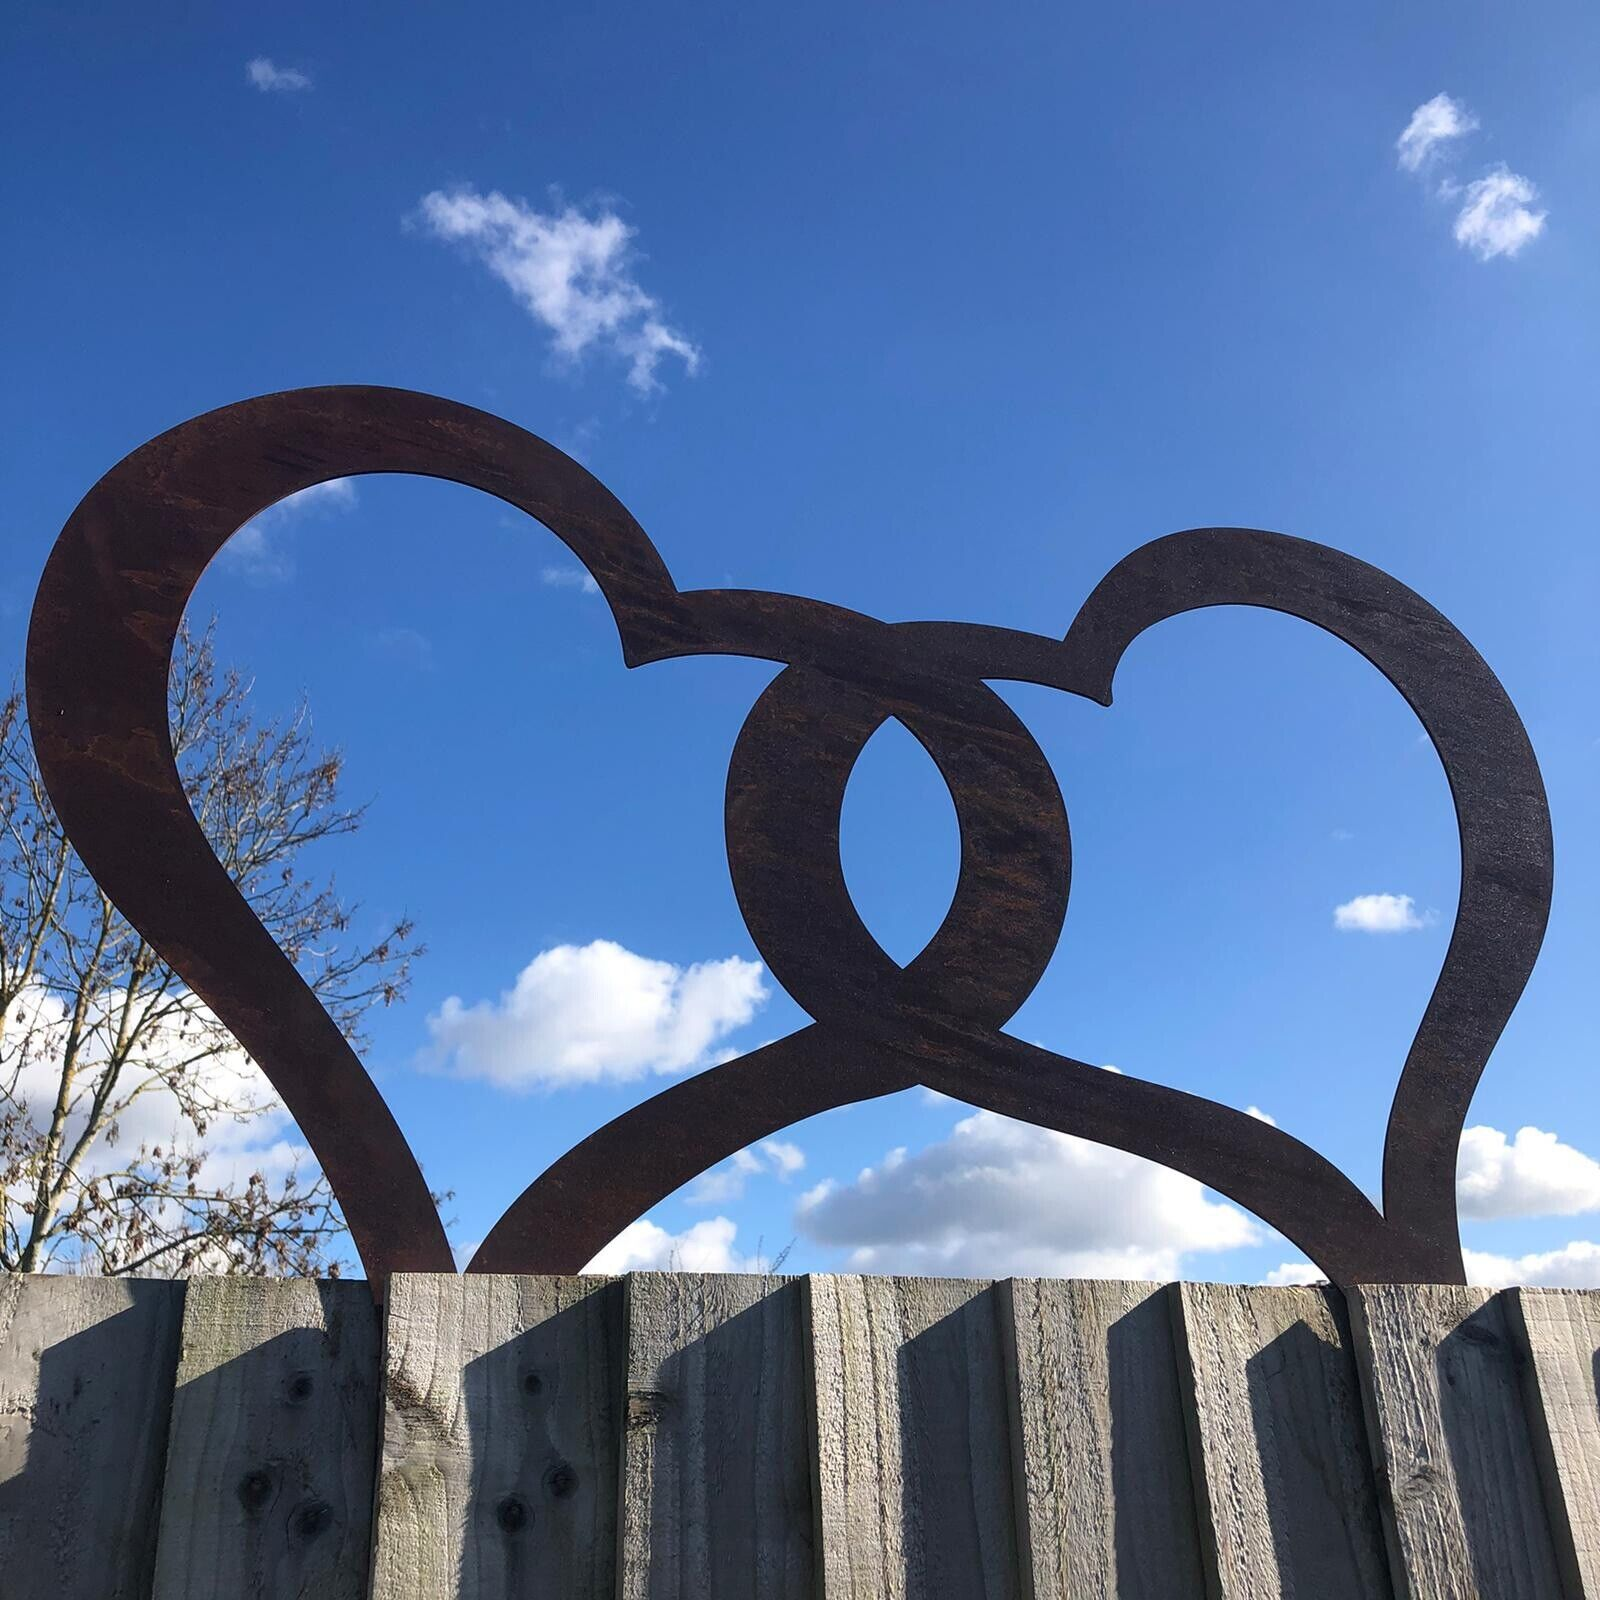 Garden joined hearts rusty metal ornament sign feature decoration family rustic